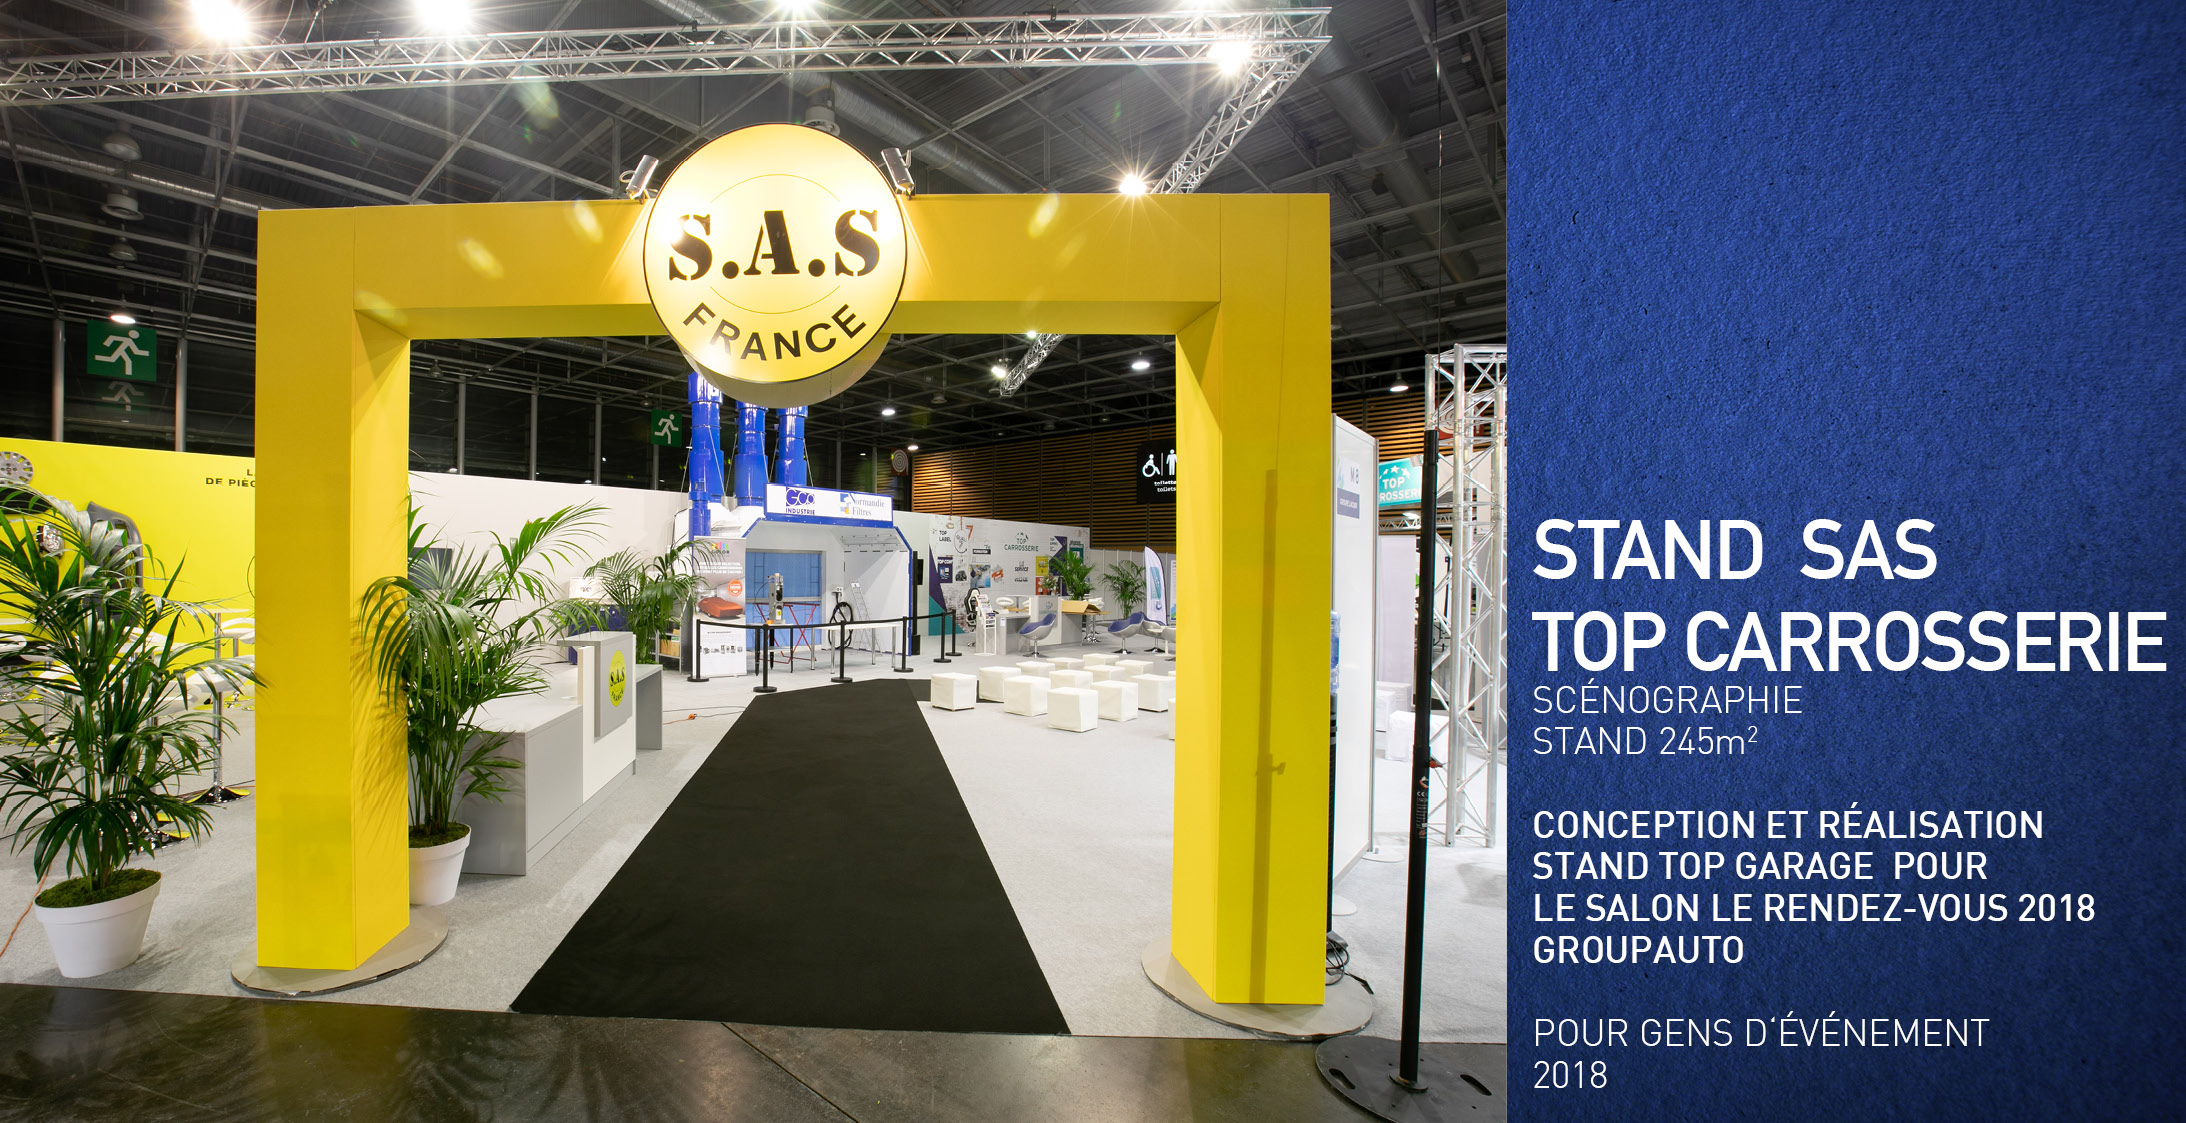 Stand SAS Top Carrosserie